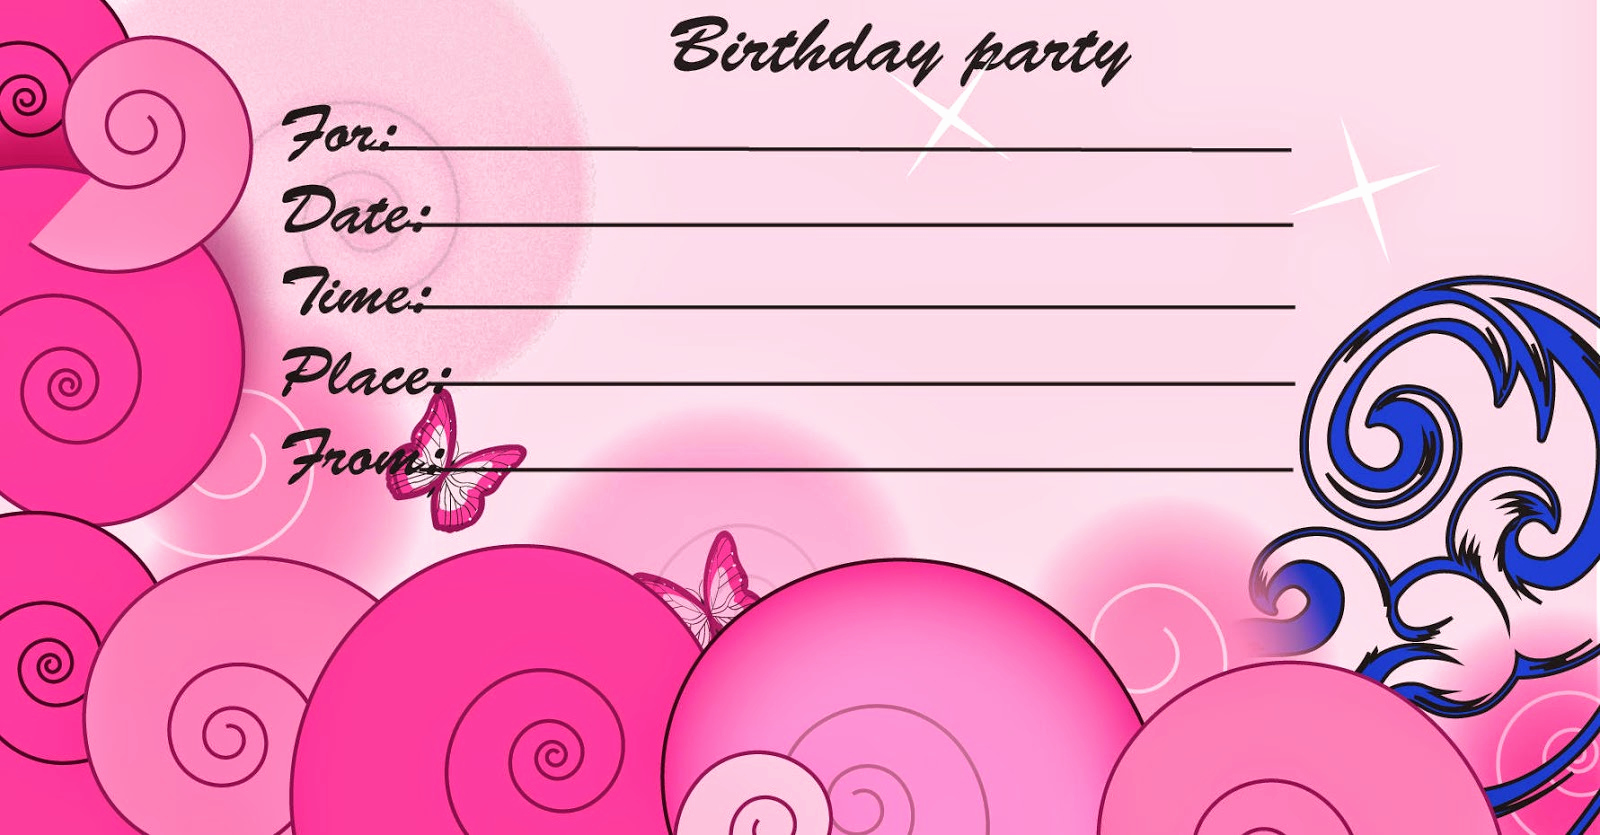 Printable Birthday Invitation Cards Fresh Printable Birthday Cards Printable Invitation Cards